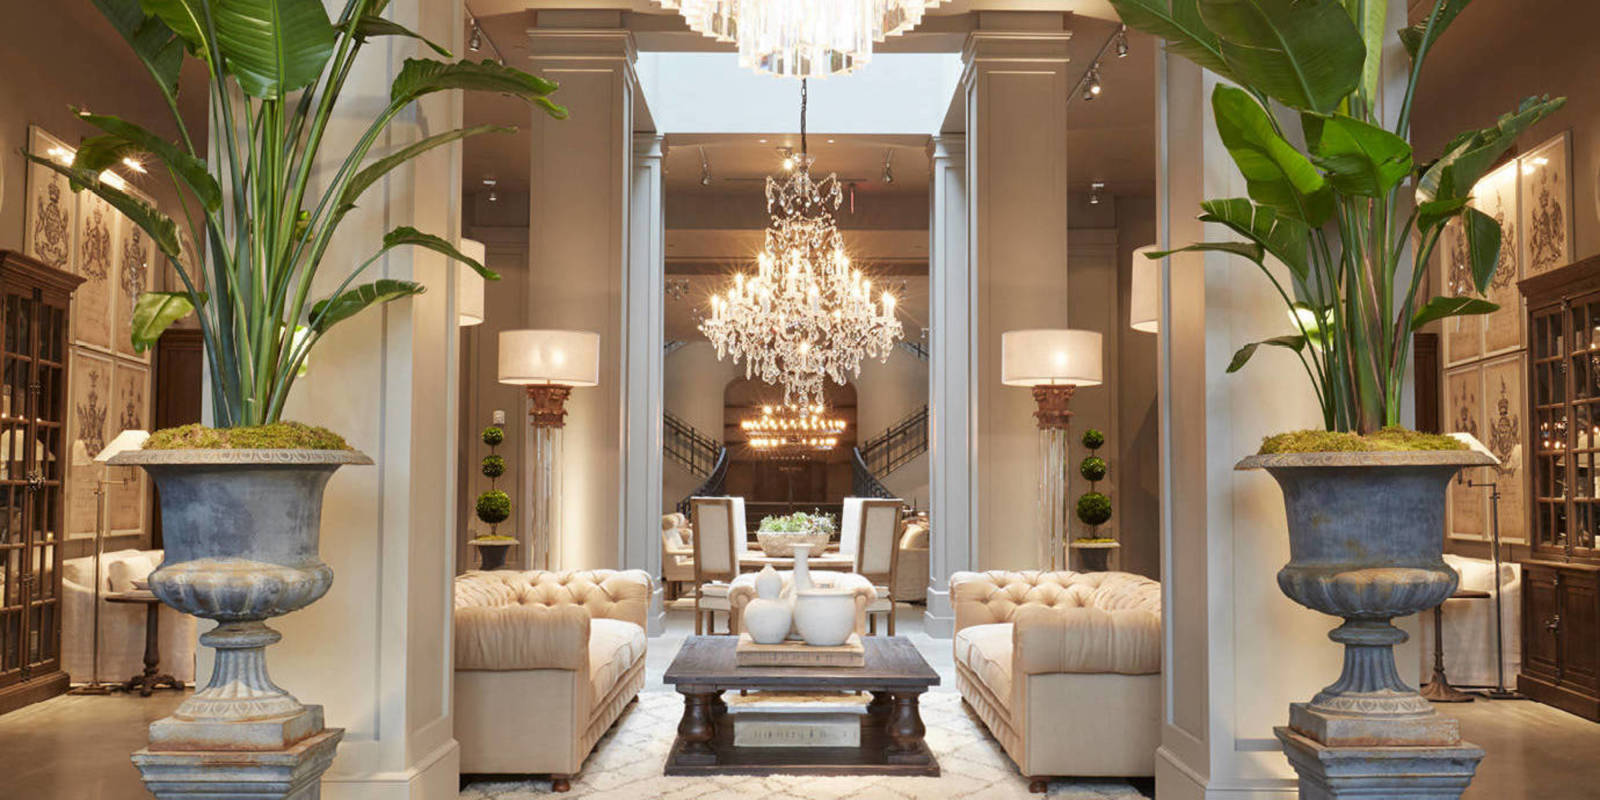 Restoration hardware 39 s latest store delivers the goods for Home design restoration